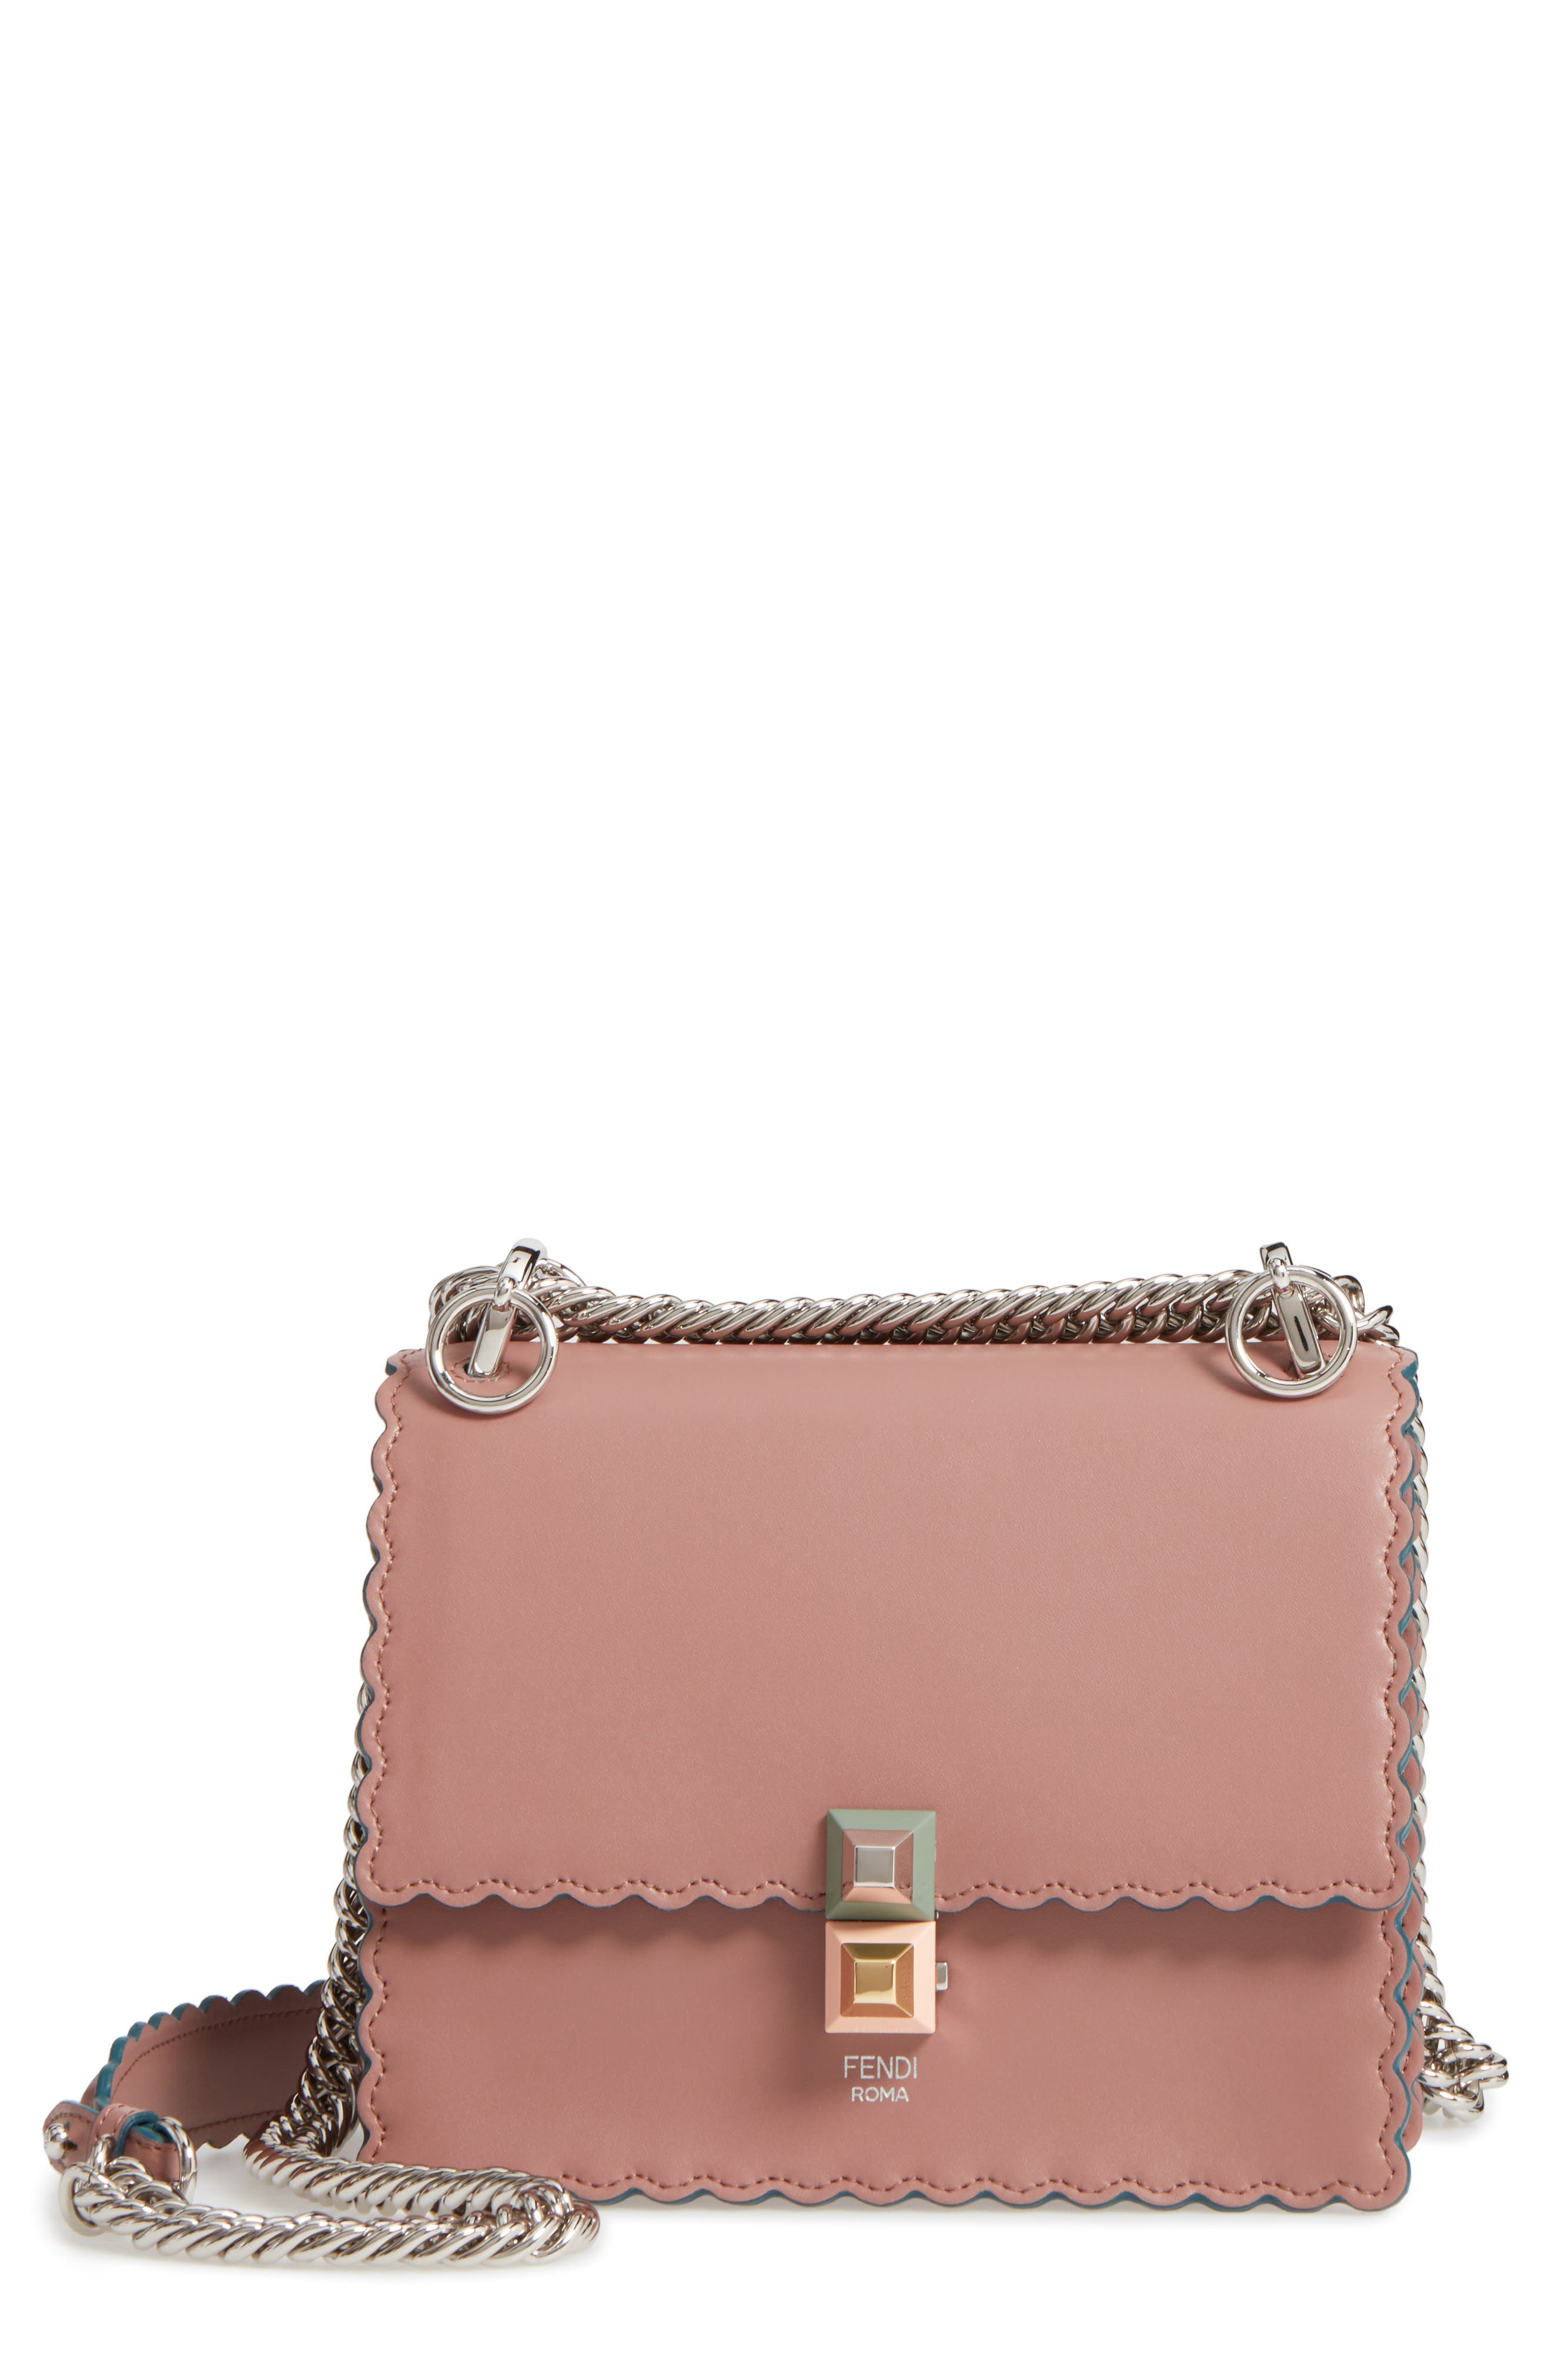 Small Kan I Scallop Leather Shoulder Bag,                         Main,                         color,